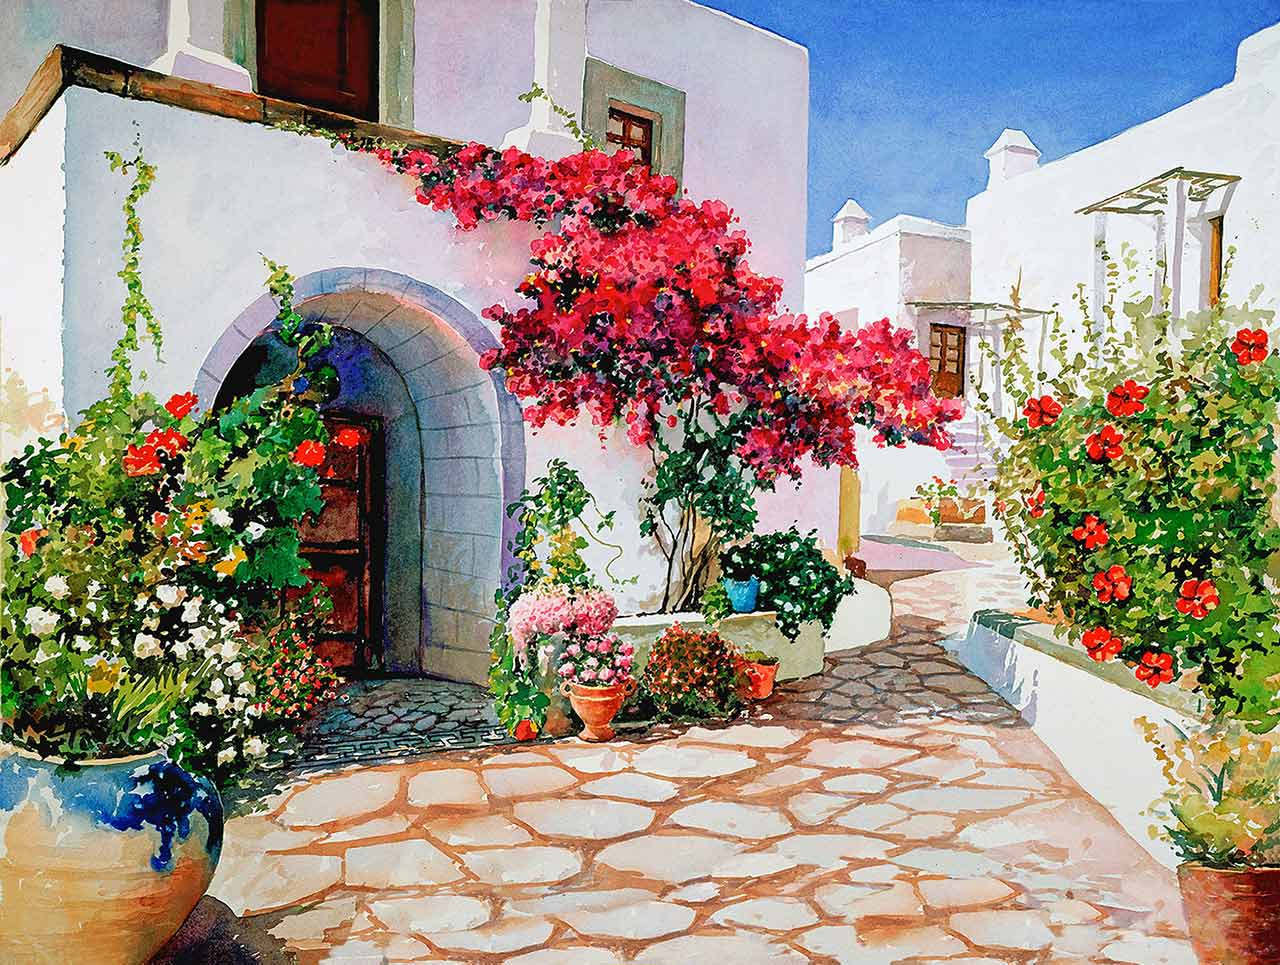 Patmos Picturespicture Of Patmos Island